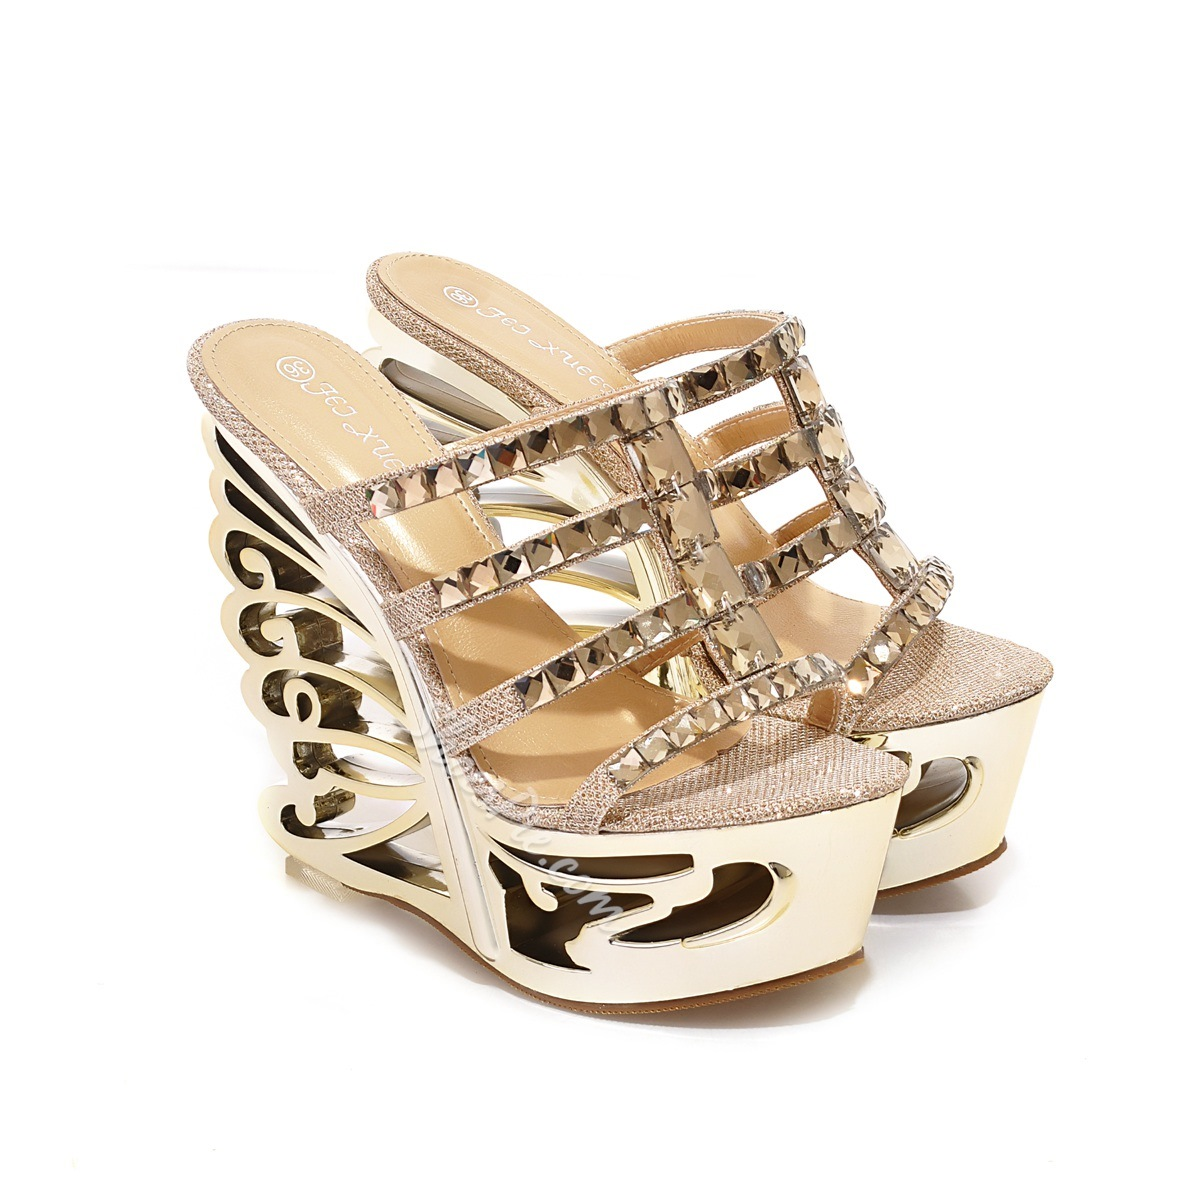 Shoespie Cut-out Rhinestone Wedge Sandals